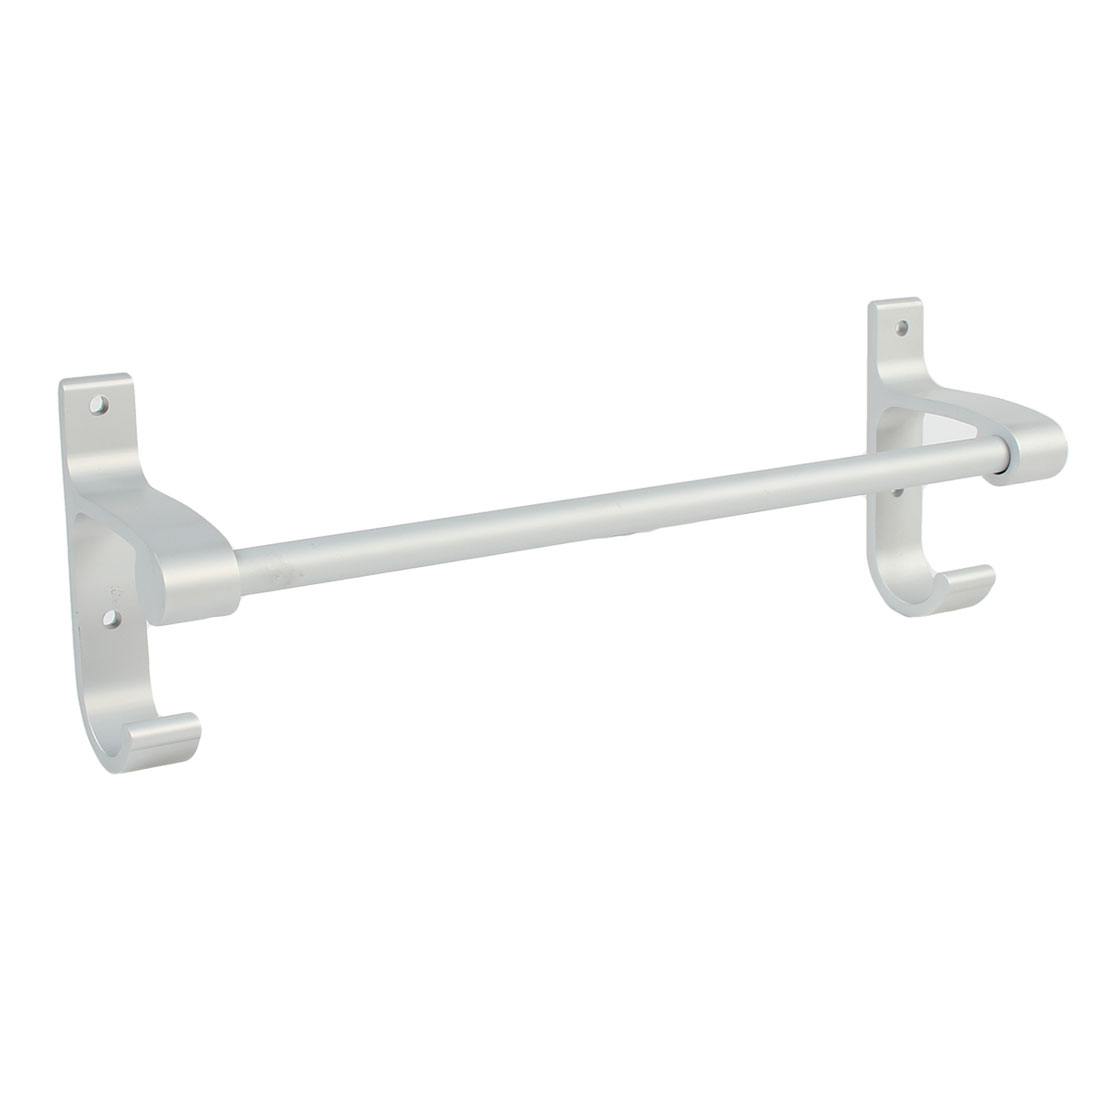 Hotel Home Bathroom Alumimum Wall Mount Single Bar Towel Rack Hanger 30cm Length